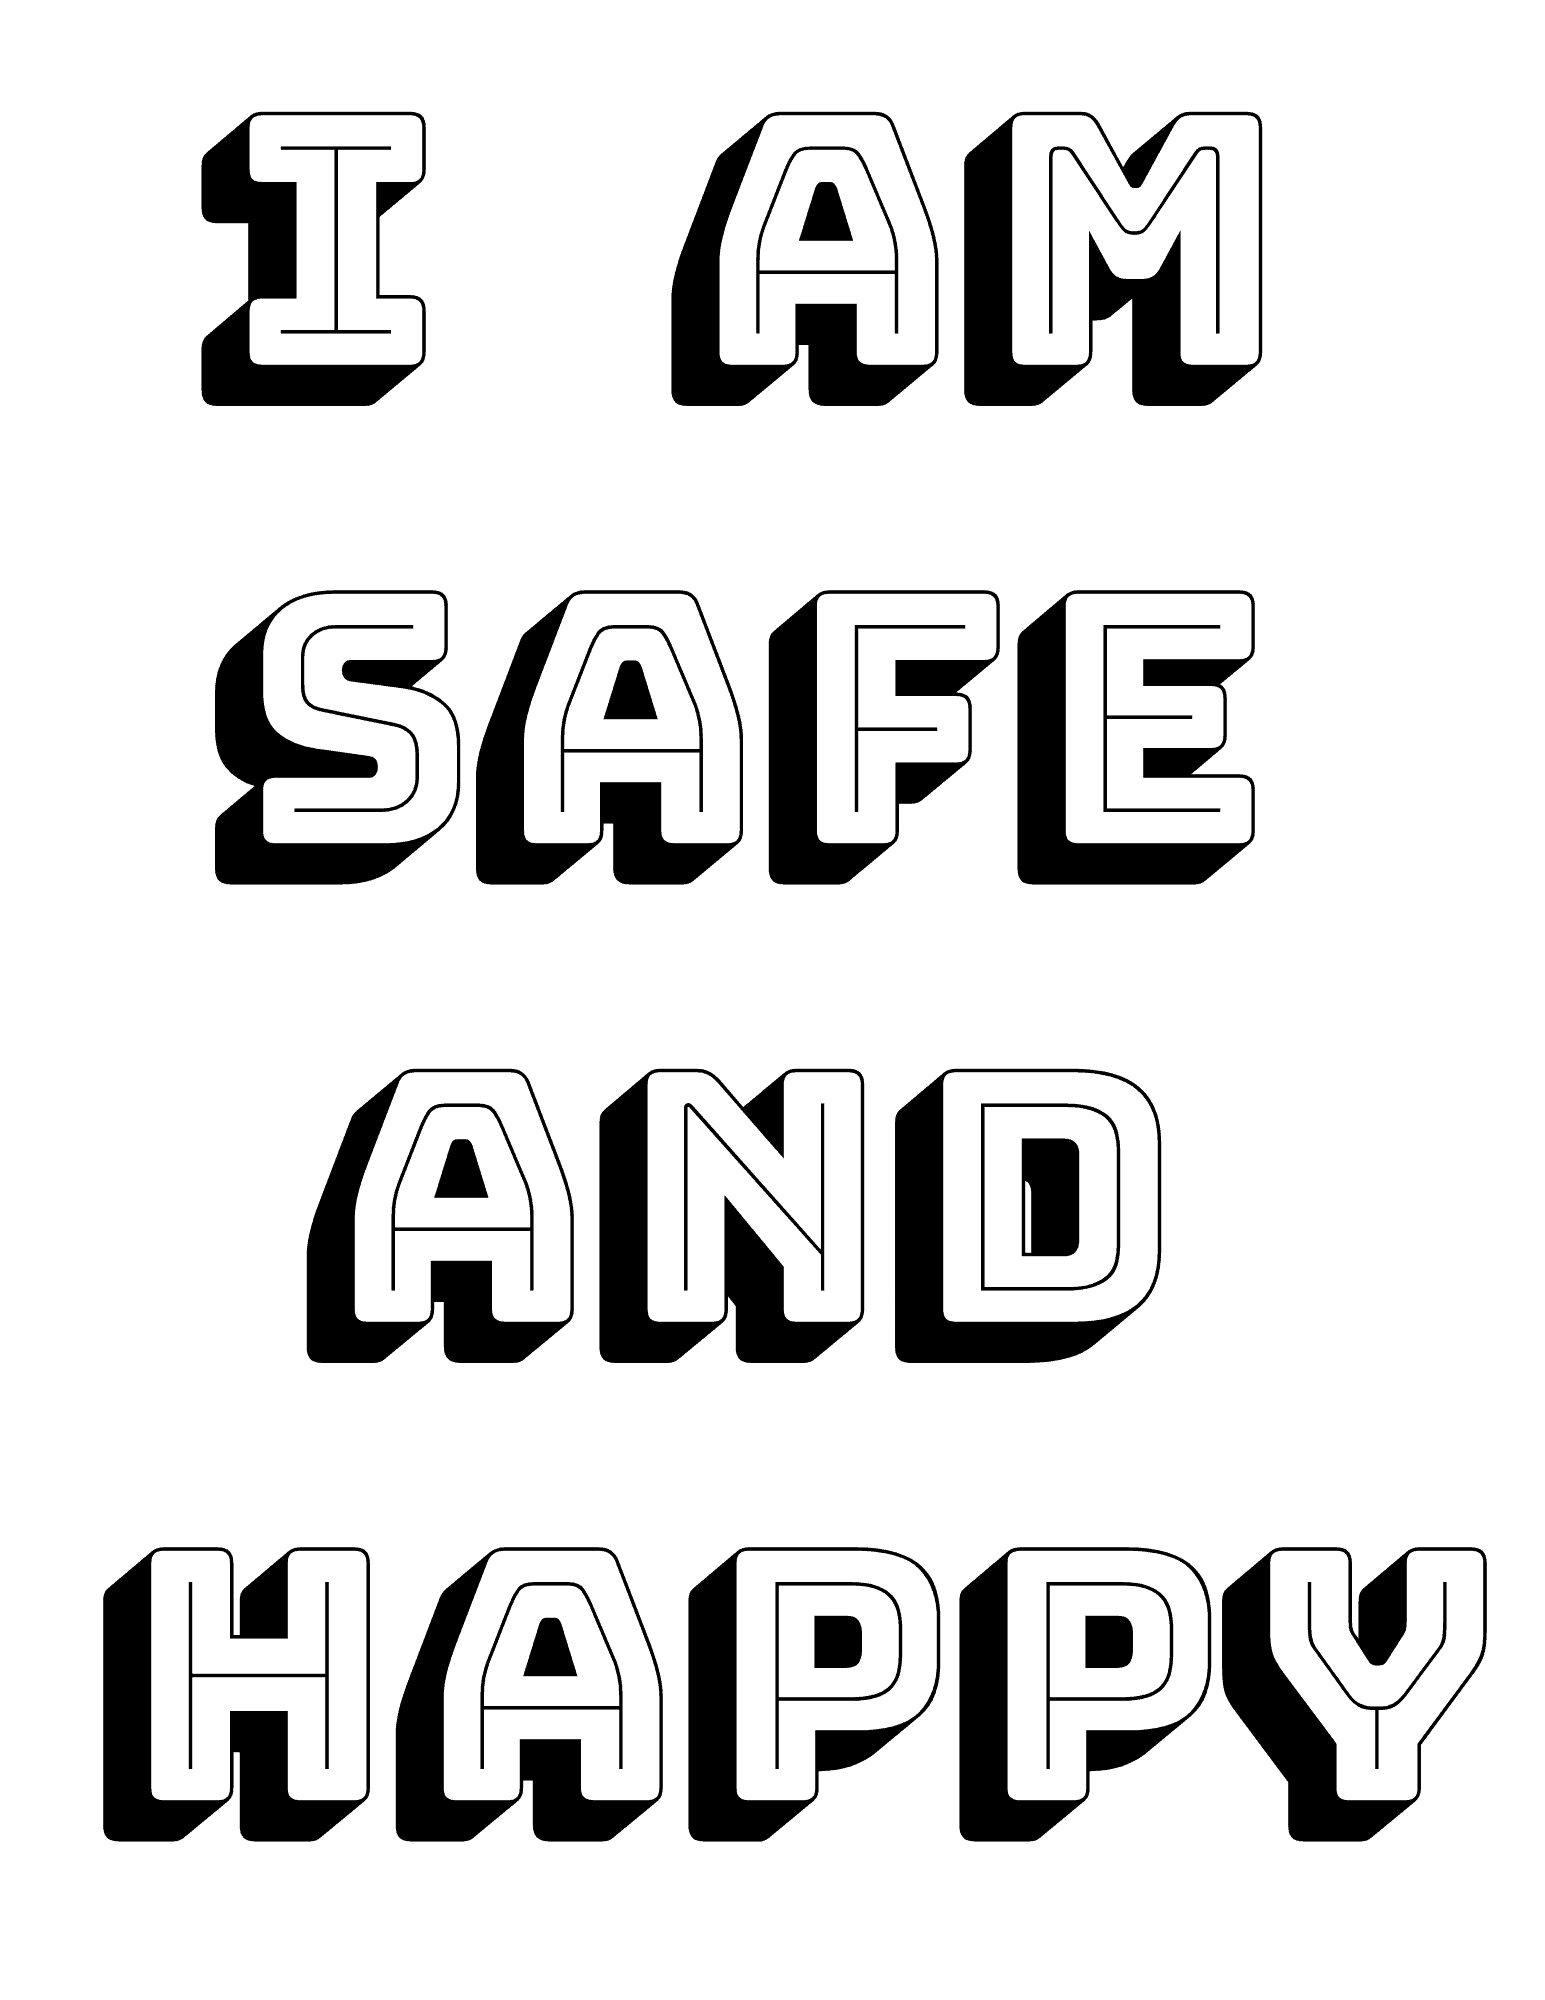 I am safe and happy coloring page